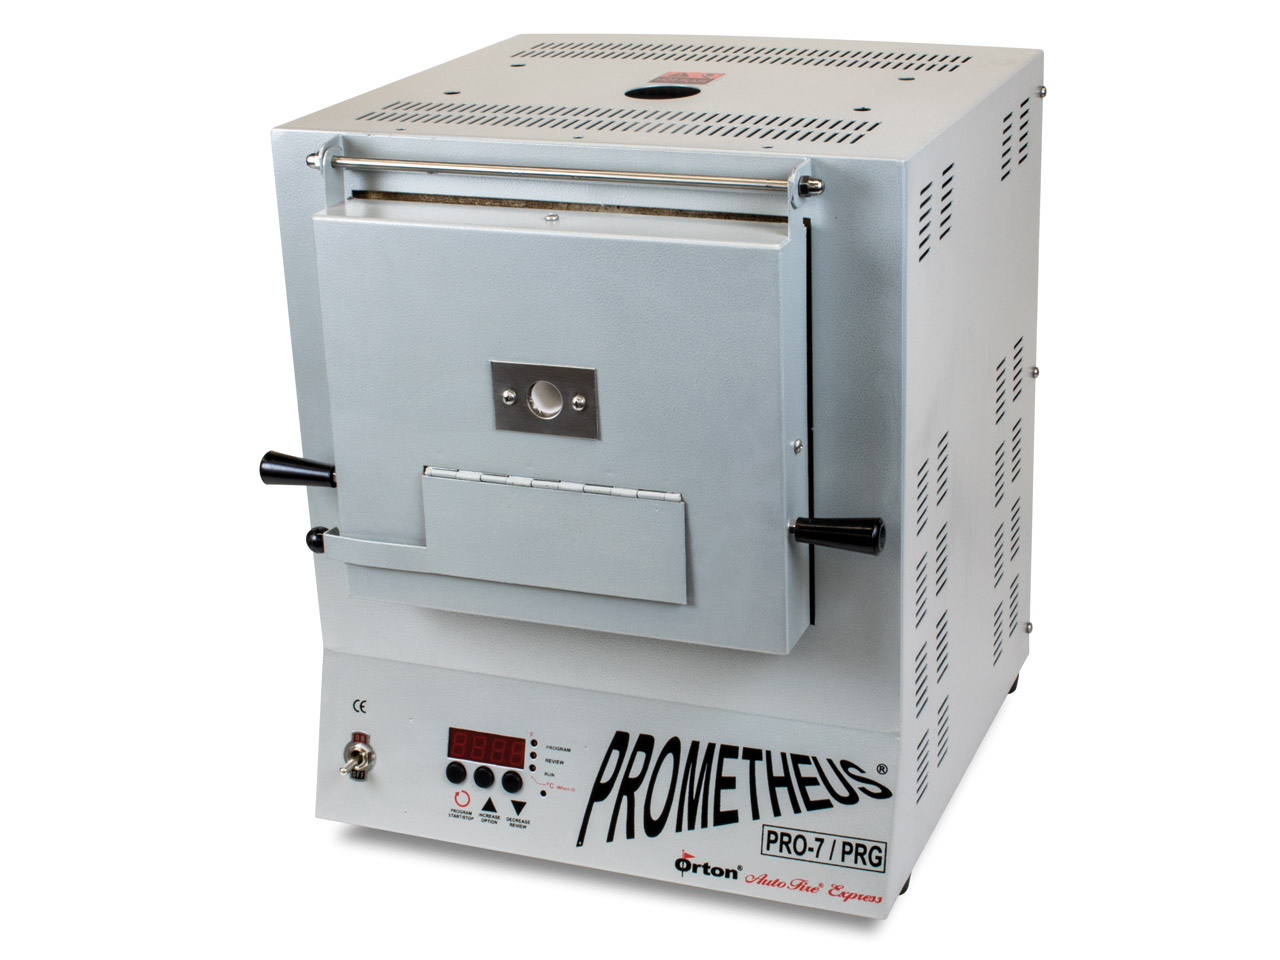 Prometheus Kiln Pro-7-prg-bd       Programmable With Timer